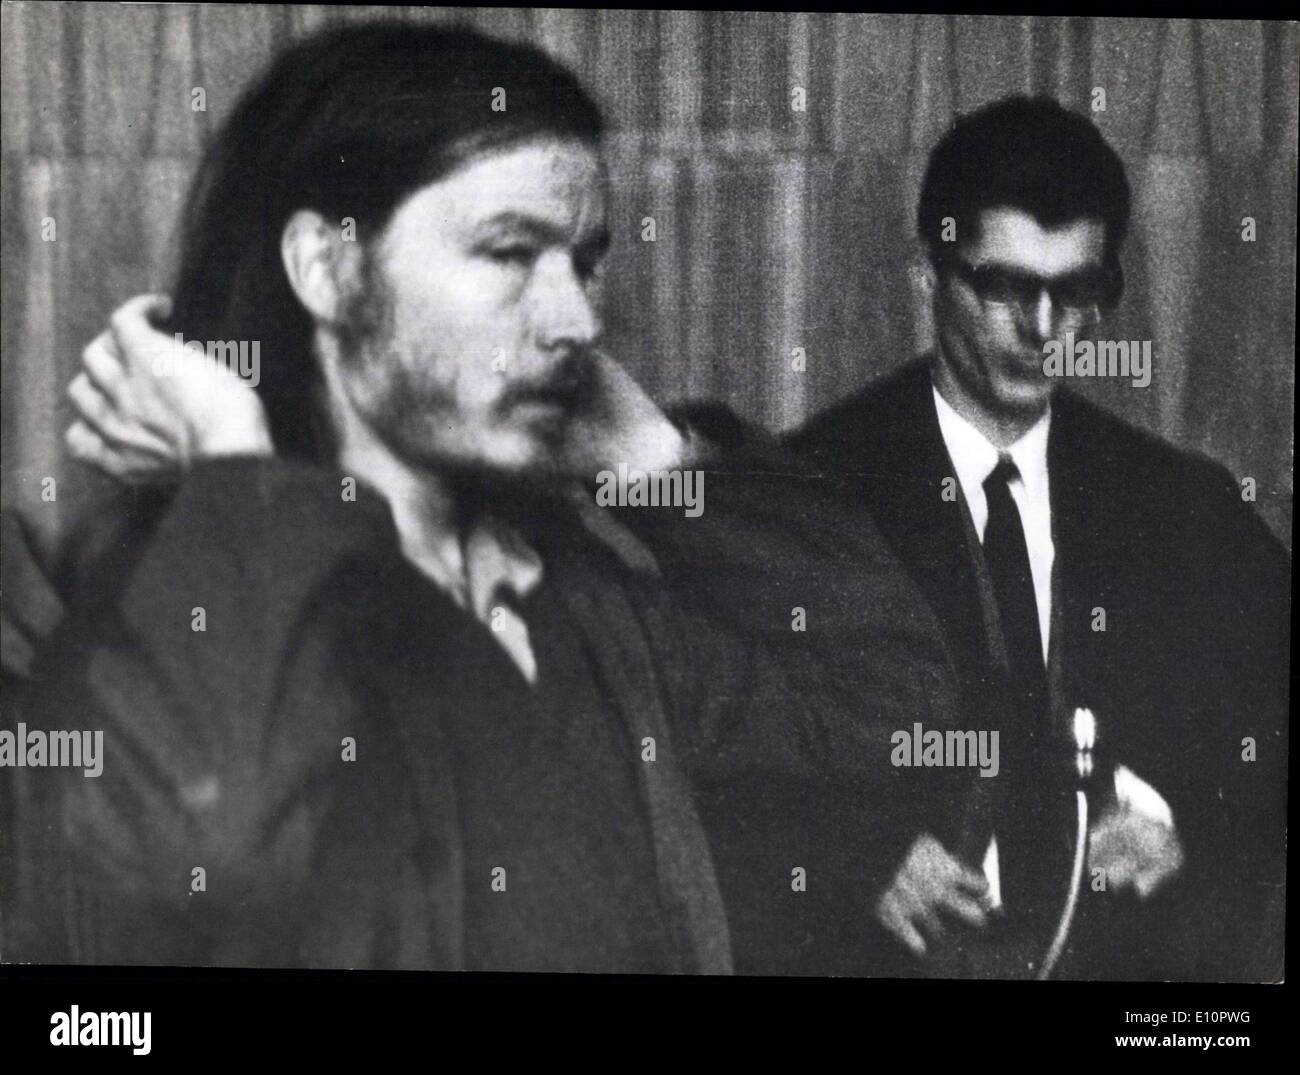 Sep. 24, 1973 - Another trial against member of anarchistic Baader-Meinhoff group, started on Sept. 24, 1973 in Munich: Mr. Gerd Pohle, 31, formerly an attorney himself, is accused of having bought weapons and equipment for the anarchistic reunion. Safety measures taken by Munich police were very strict for this trial. Yet they could not prevent tumult and protests among the spectators, mostly young people and students who sympathise with the defendant. Several of them were arrested on account of contempt of court - Stock Image